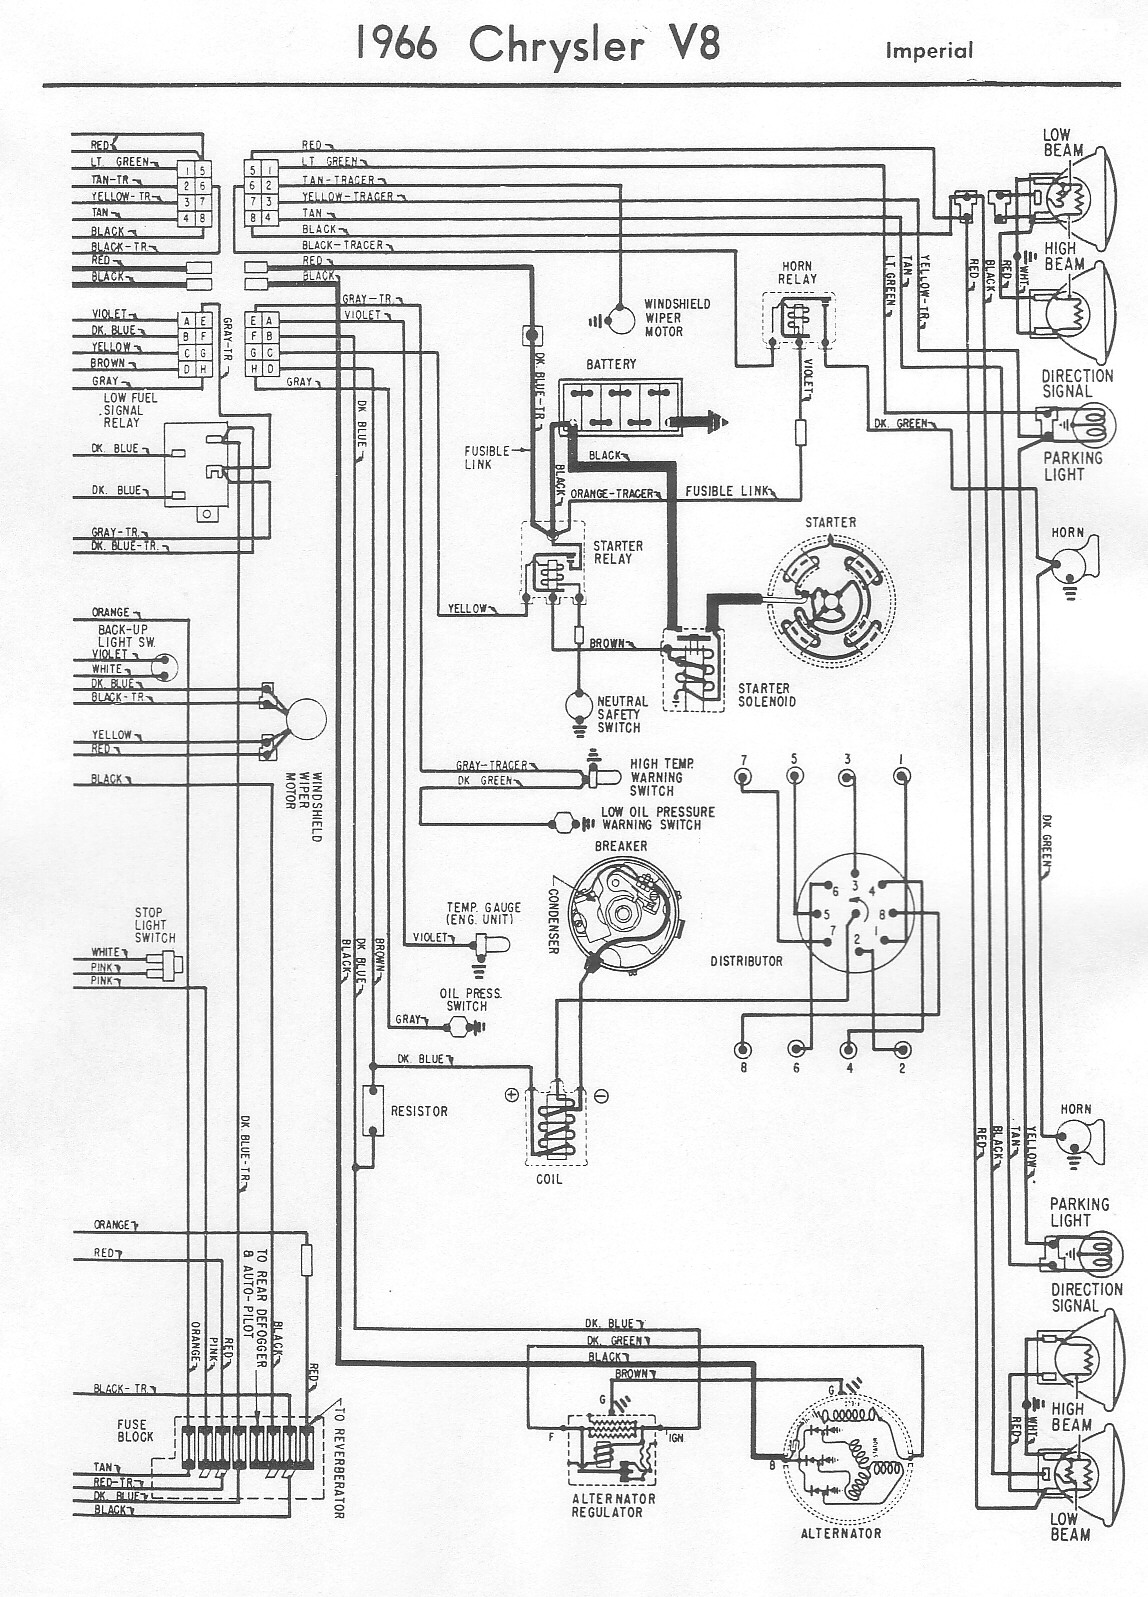 blue bird wire schematics wiring library85 camaro dash wiring diagram schematic auto electrical wiring diagram 1966 [ 1148 x 1597 Pixel ]